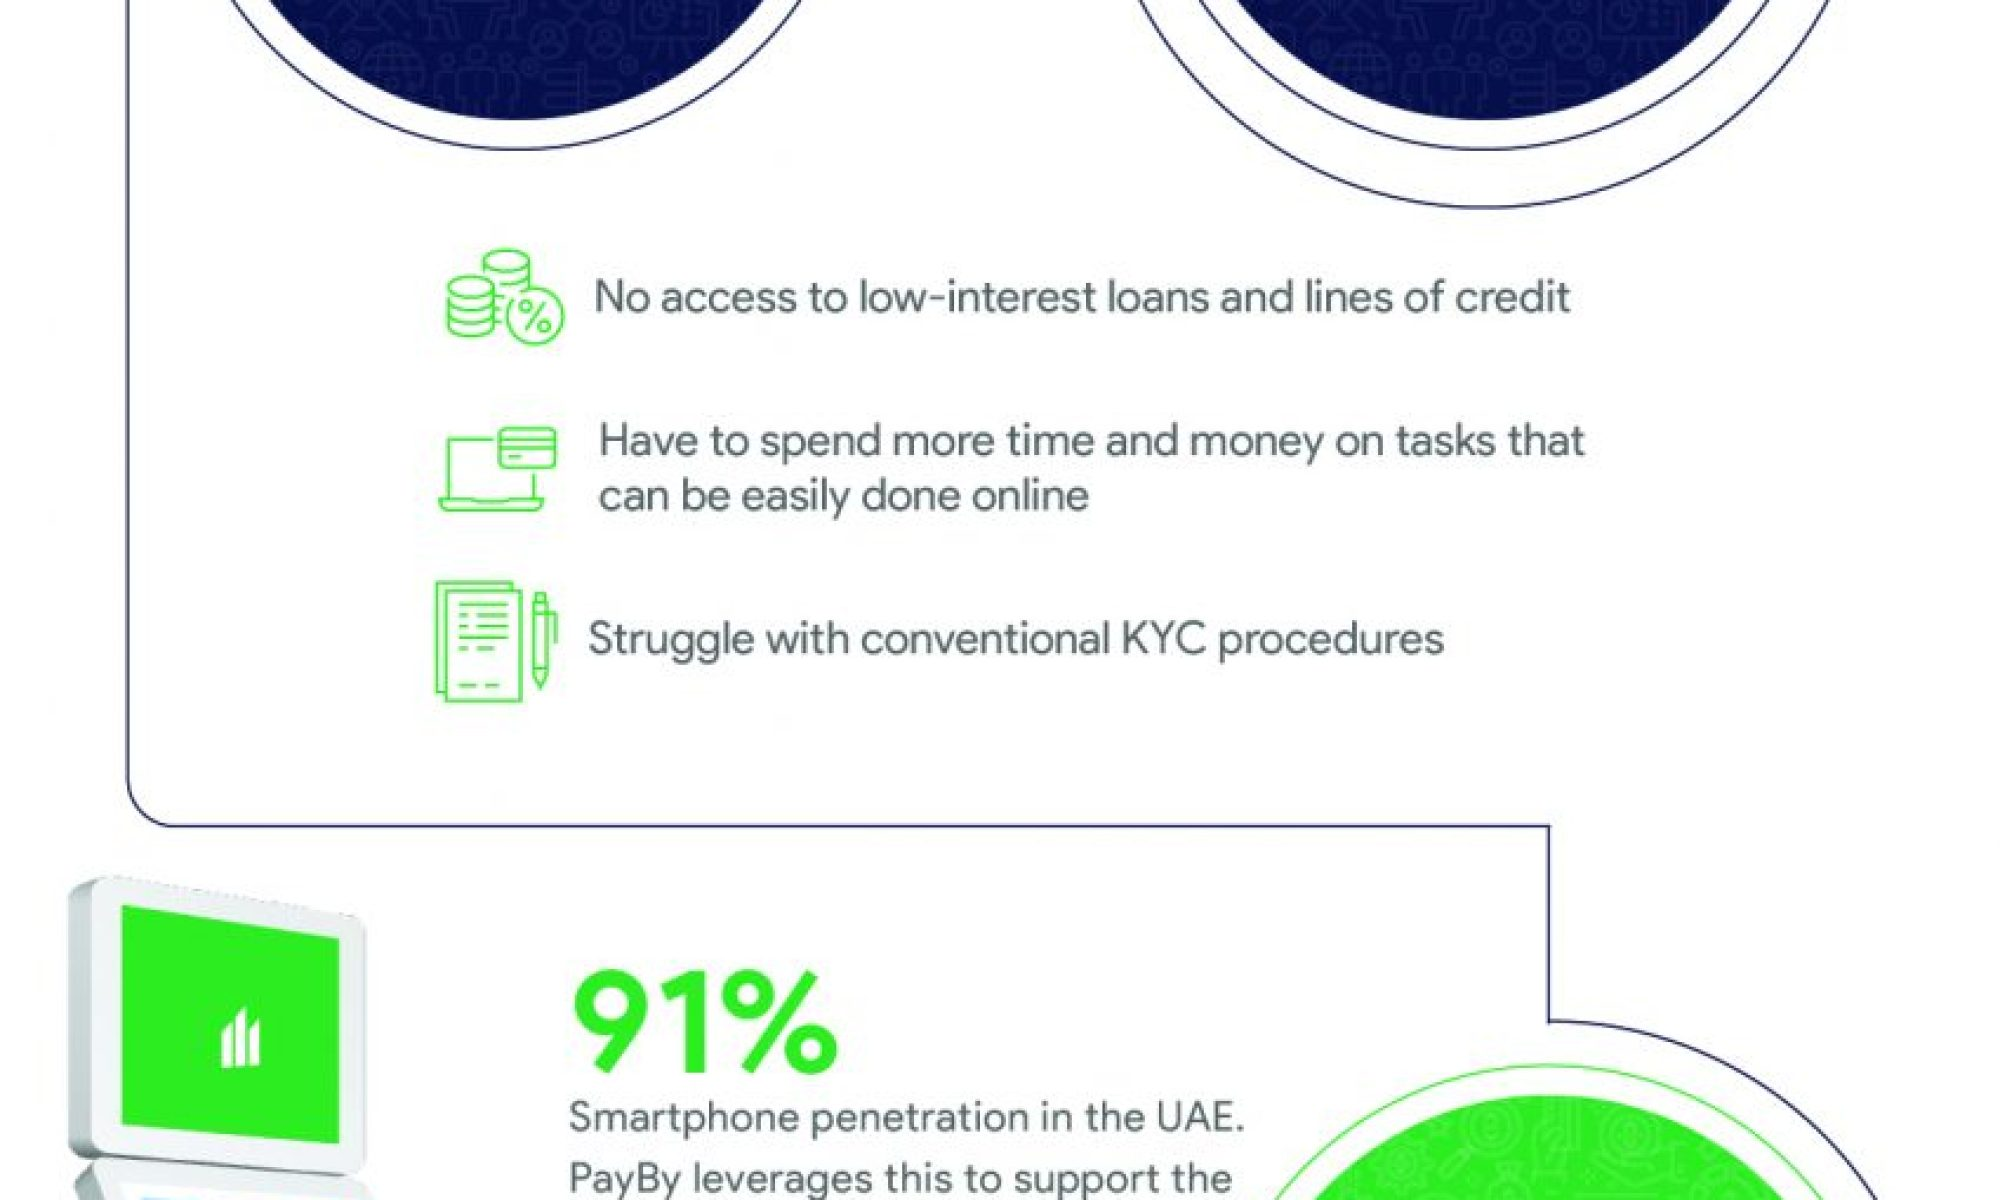 Mobile payment solution provider PayBy serves underbanked with uPay partnership, facilitating greater financial inclusion in the United Arab Emirates